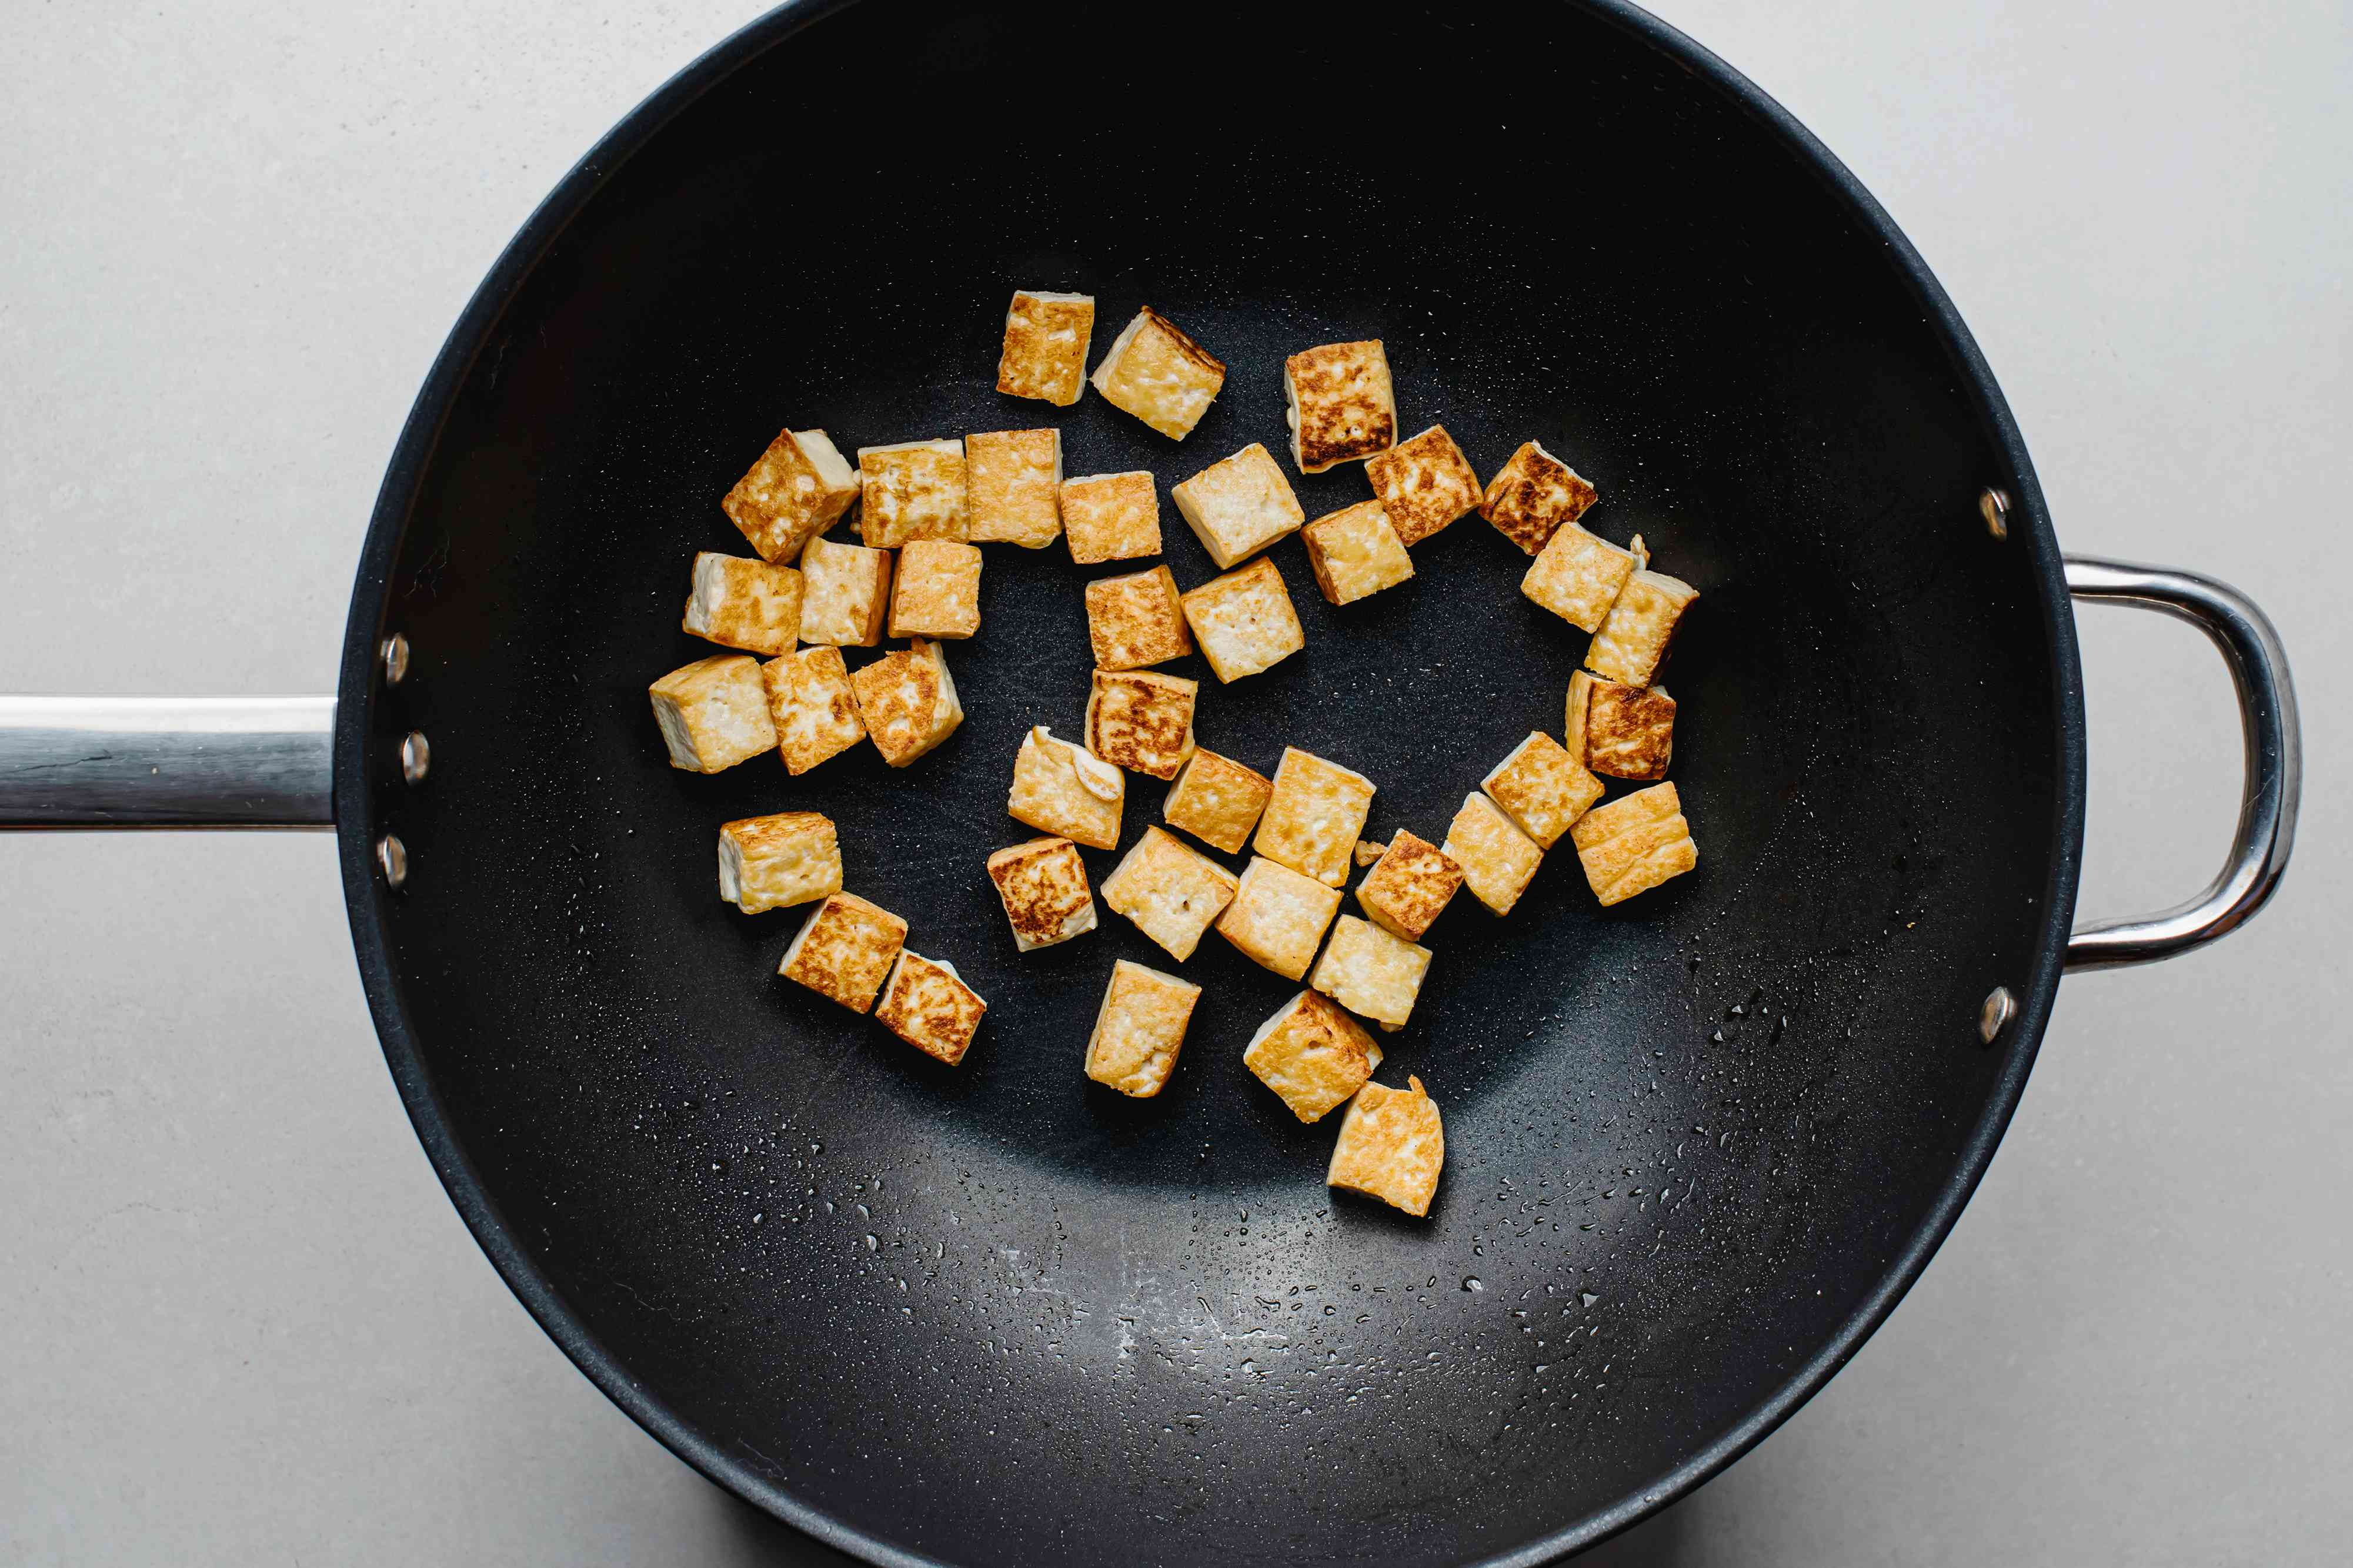 tofu cooking in a wok